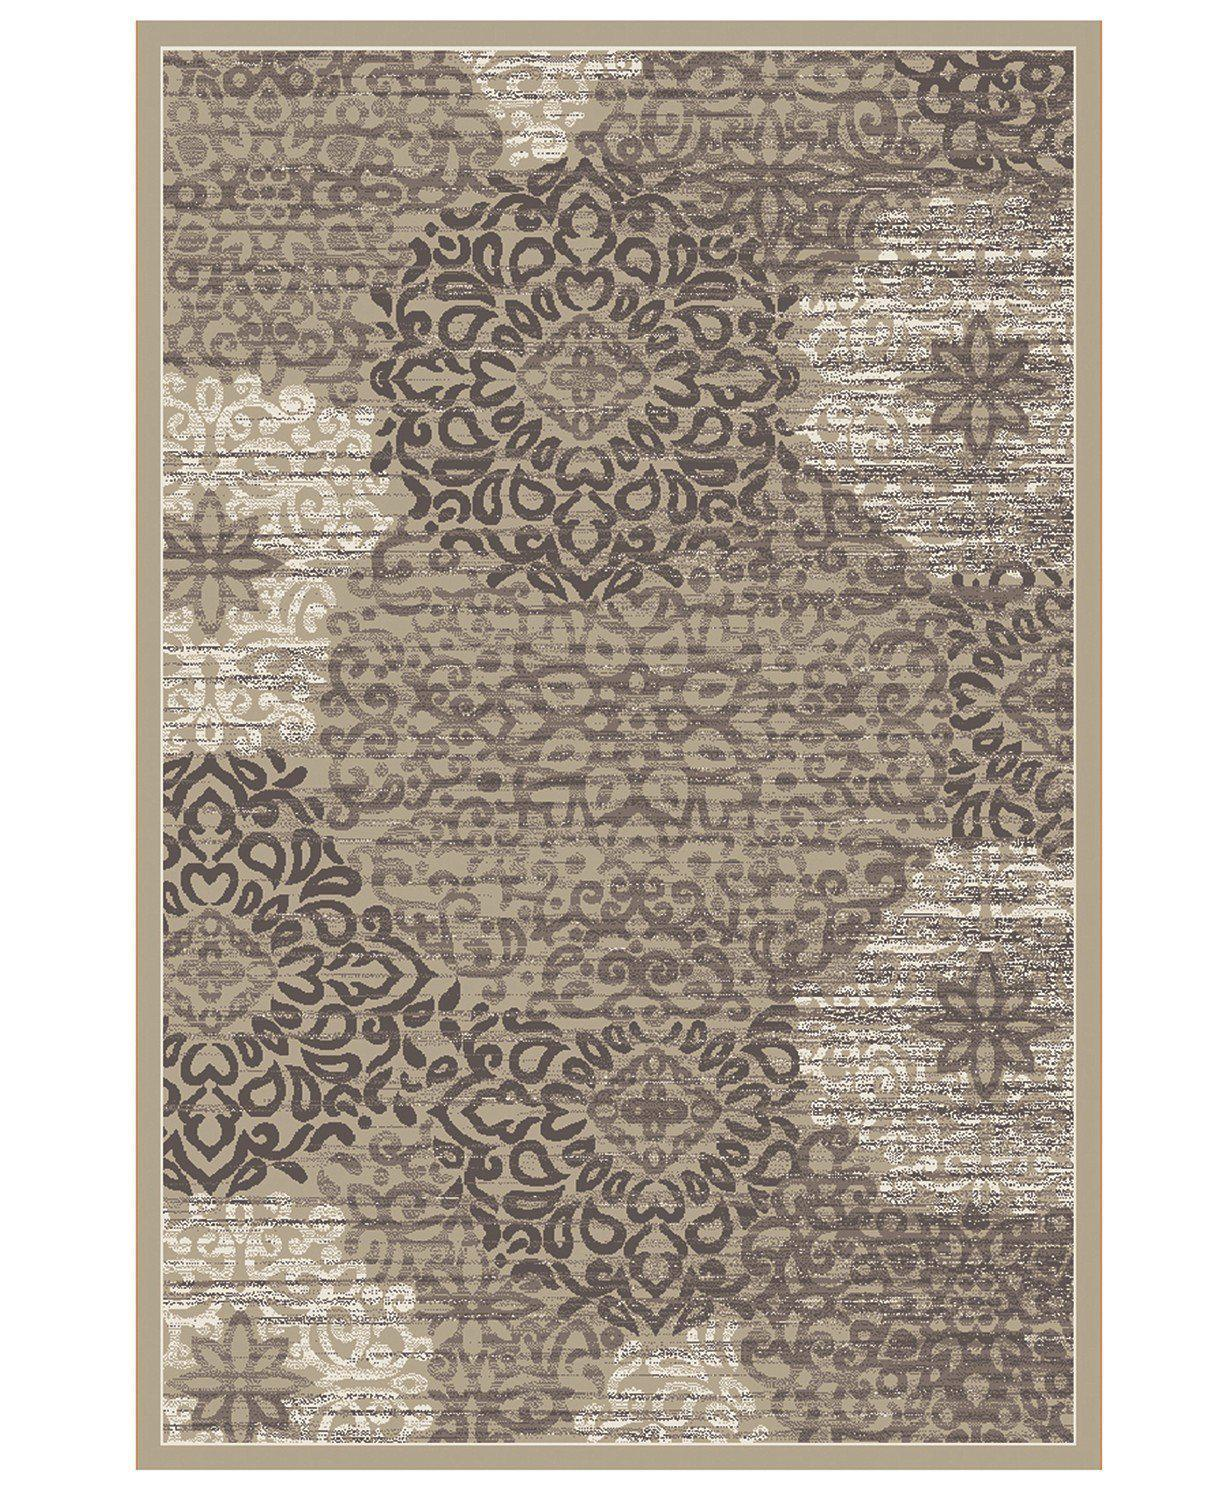 Teramo Intrigue Beige-Area Rugs-KM Home-2' 02'' x 7' 07''-The Rug Truck